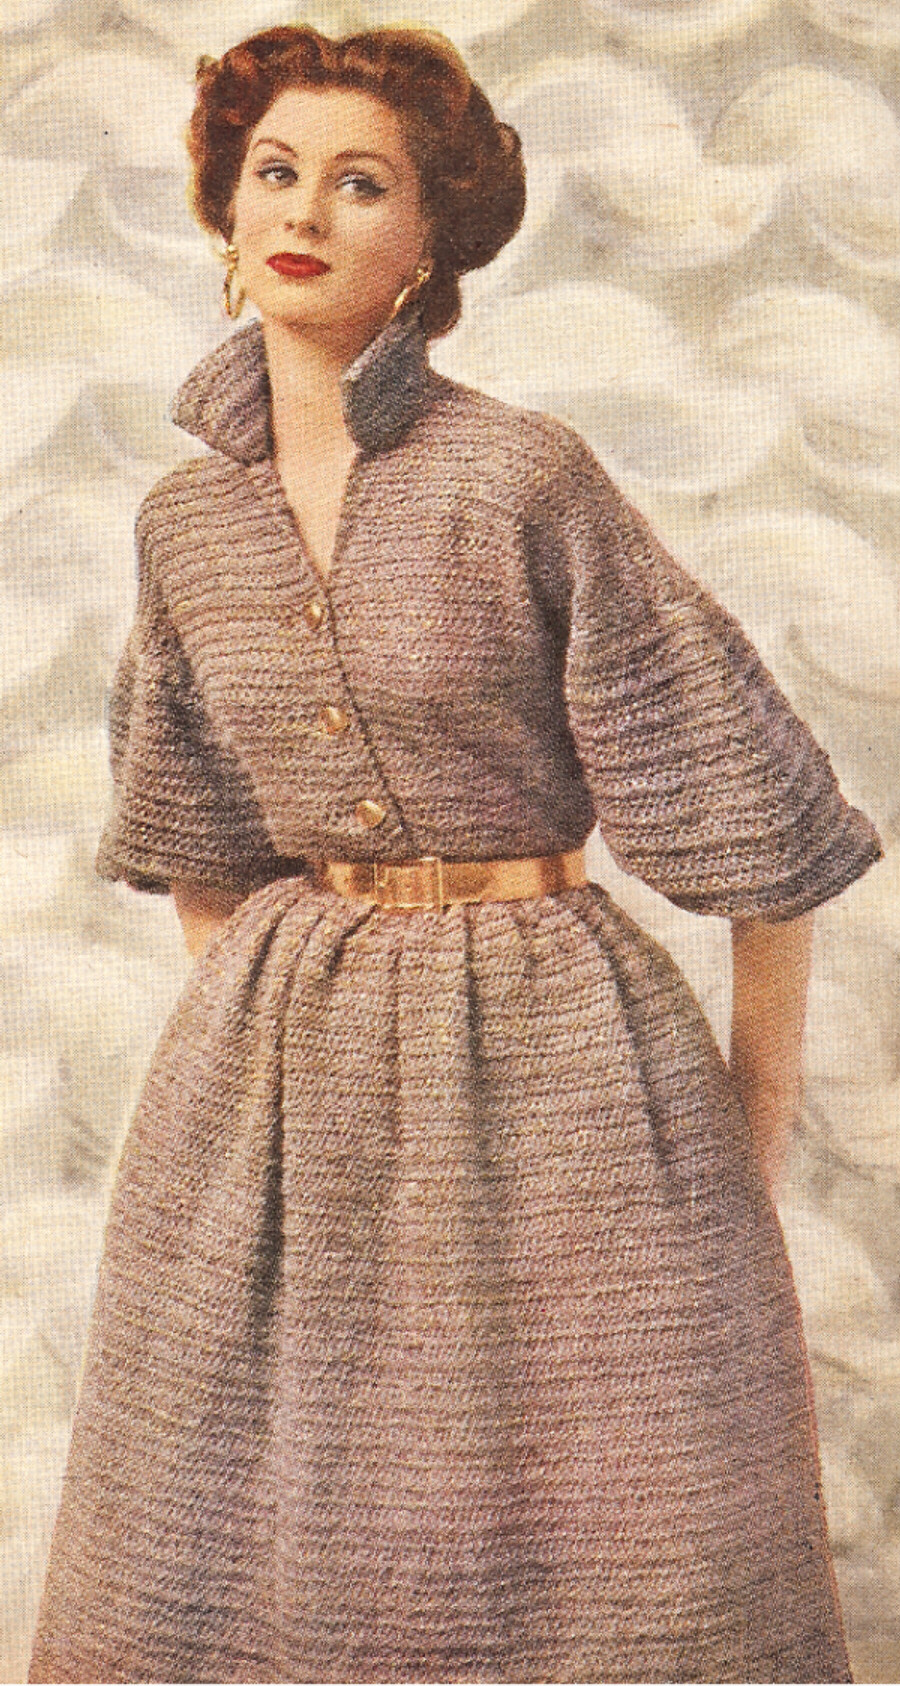 Simple Knit Dress Pattern : Vintage Knitting PATTERN to make Quick-Knit Designer Dress Easy BrownDress ...